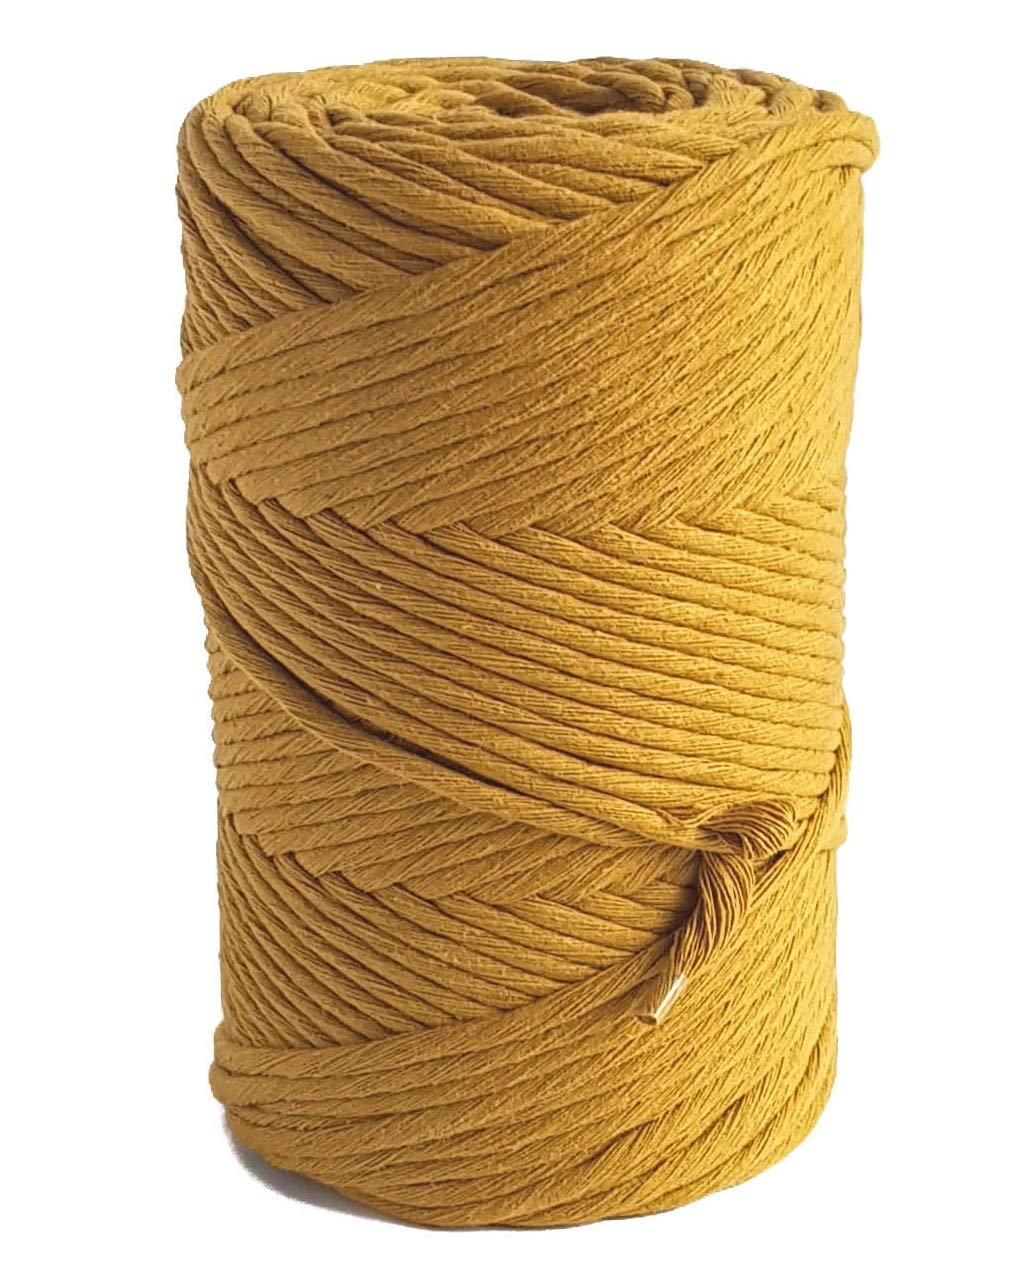 Mustard Macrame Cord 3mm Cotton Cord 459 feet Cotton Rope for Macrame Projects